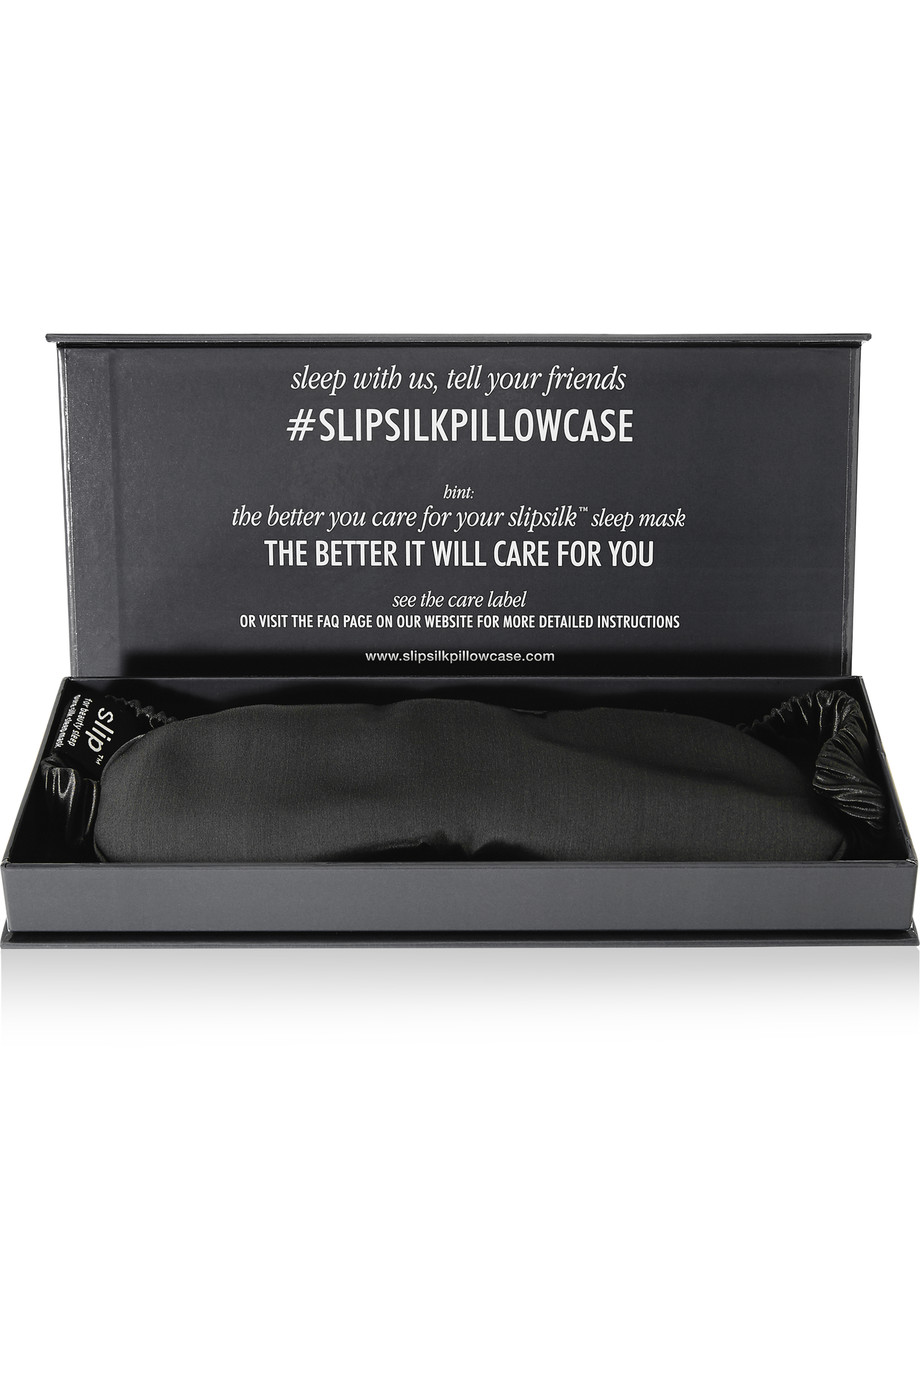 A Charcoal infused silk pillow case and eye pads help keep wrinkles away by reducing friction, and prevent tugging or stretching the skin. Silk Pillow case is also excellent for keeping hair smooth and frizz free. Silk eye pads block out light for a better nights sleep!